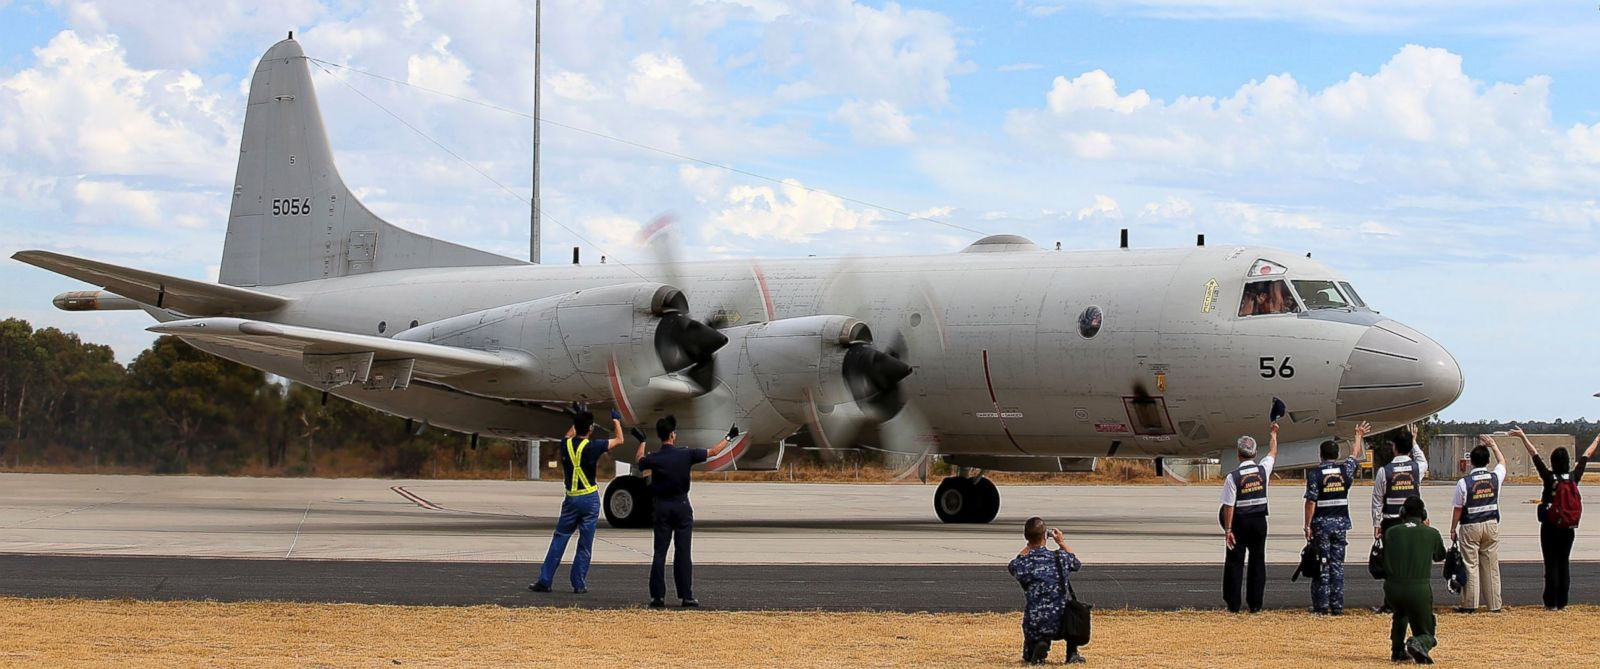 PHOTO: Japan Maritime Self-Defense Force farewell their P-3C Orion as it taxis from the Royal Australian Air Force Pearce Base to commence a search for possible debris from the missing Malaysia Airlines flight MH370, in Perth, Australia, March 24, 2014.